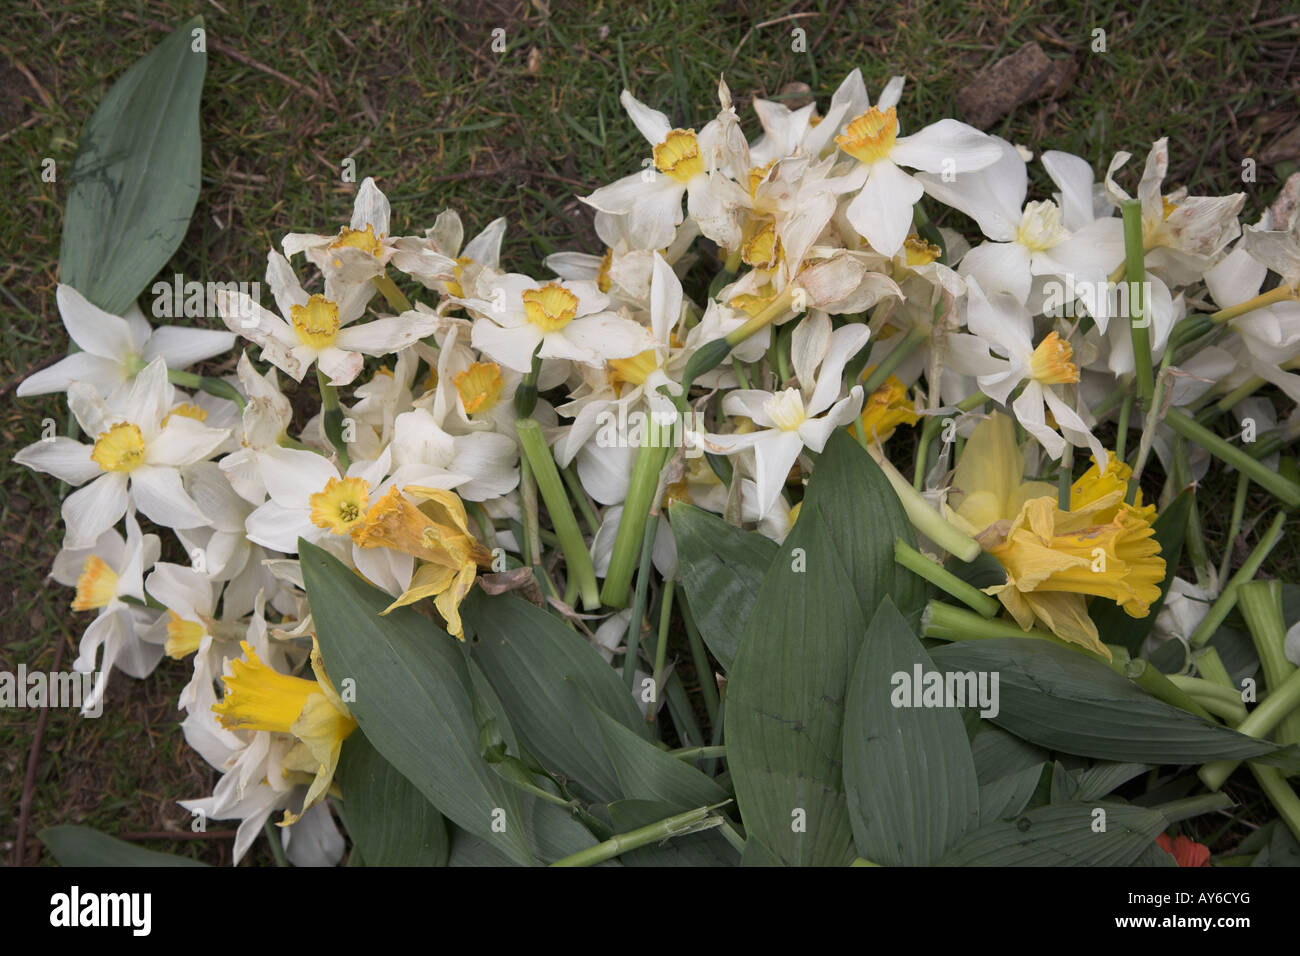 Daffodil flowers discarded on grass - Stock Image